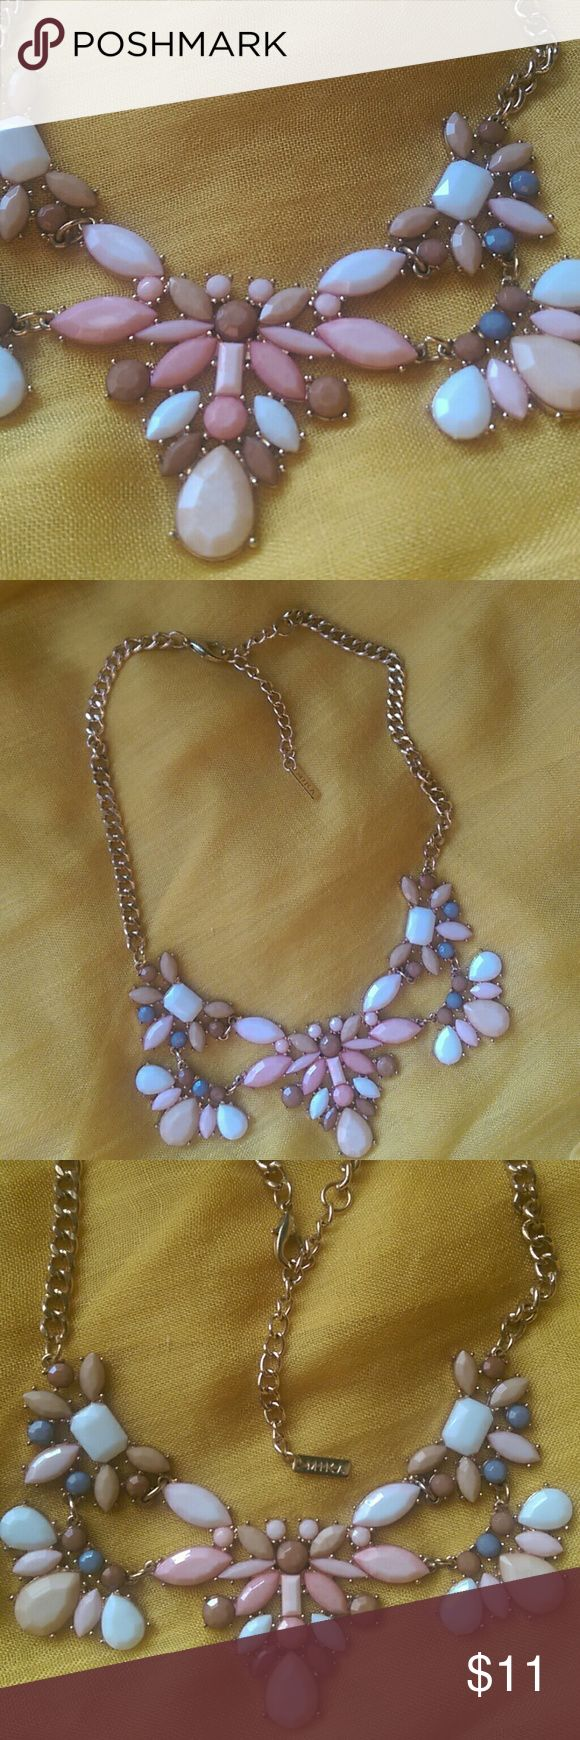 Mika Floral Necklace Gold chain, pastel pink and purple flowers with cream and white accents. Lays flat across the collarbone but is adjustable by about 2 inches of chain. Mika Jewelry Jewelry Necklaces